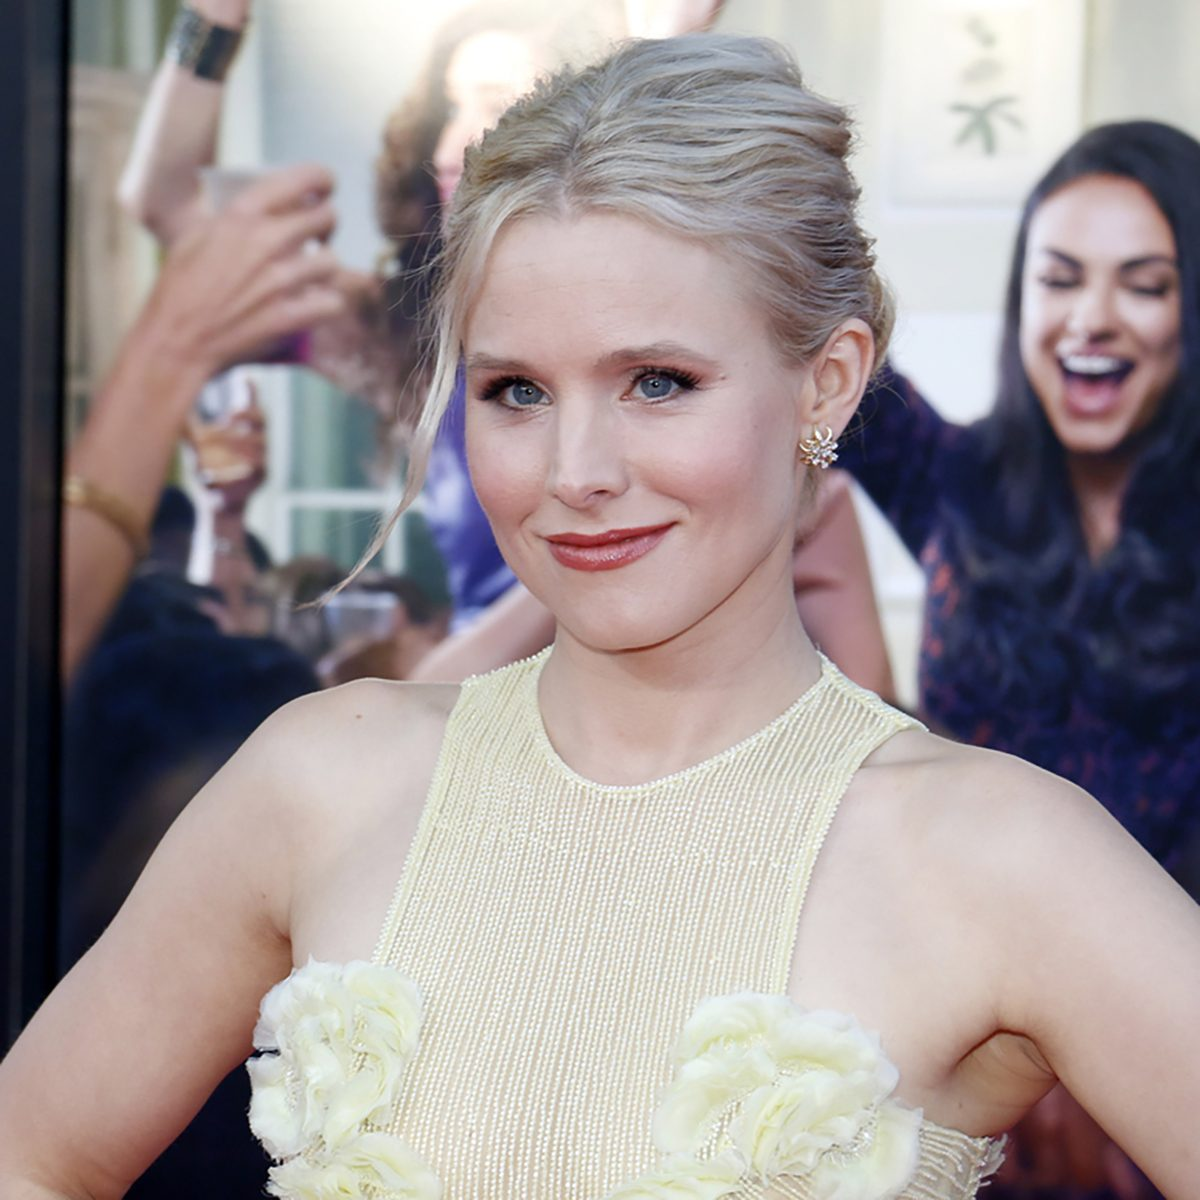 Kristen Bell at the Los Angeles premiere of 'Bad Moms' held at the Mann Village Theater in Westwood, USA on July 26, 2016.